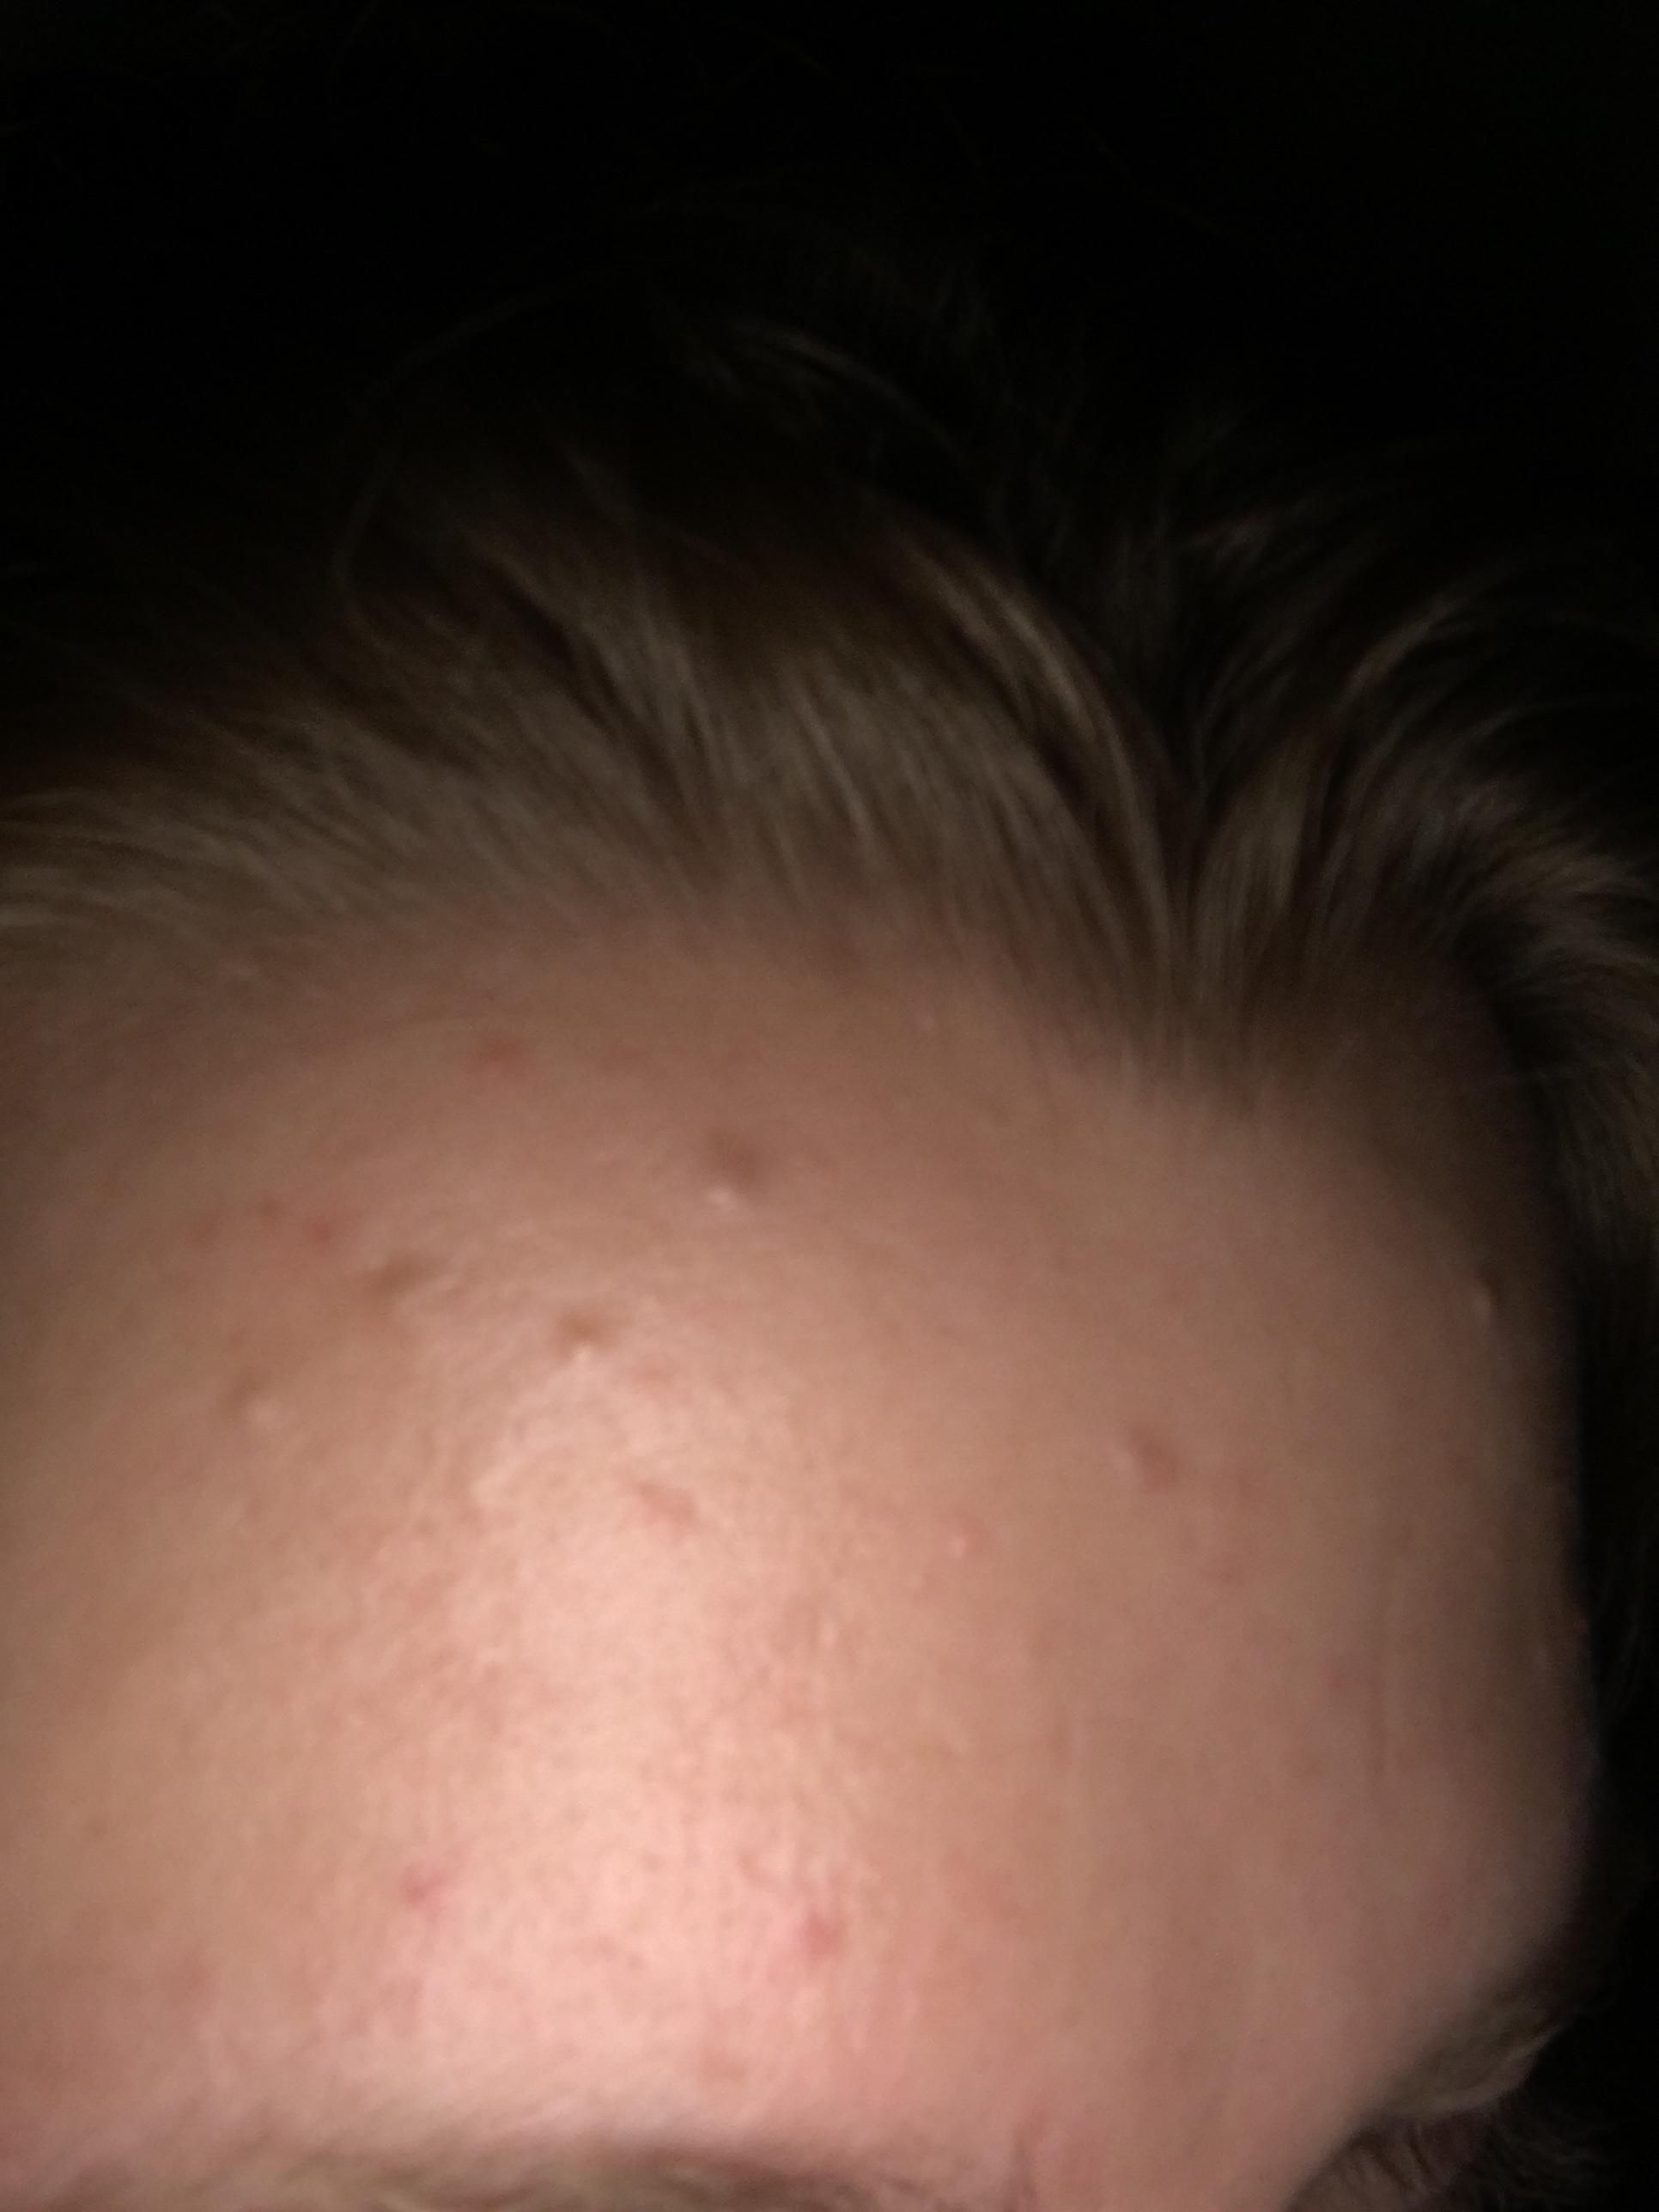 Routine Help] How do I get rid of these small dents? Photo